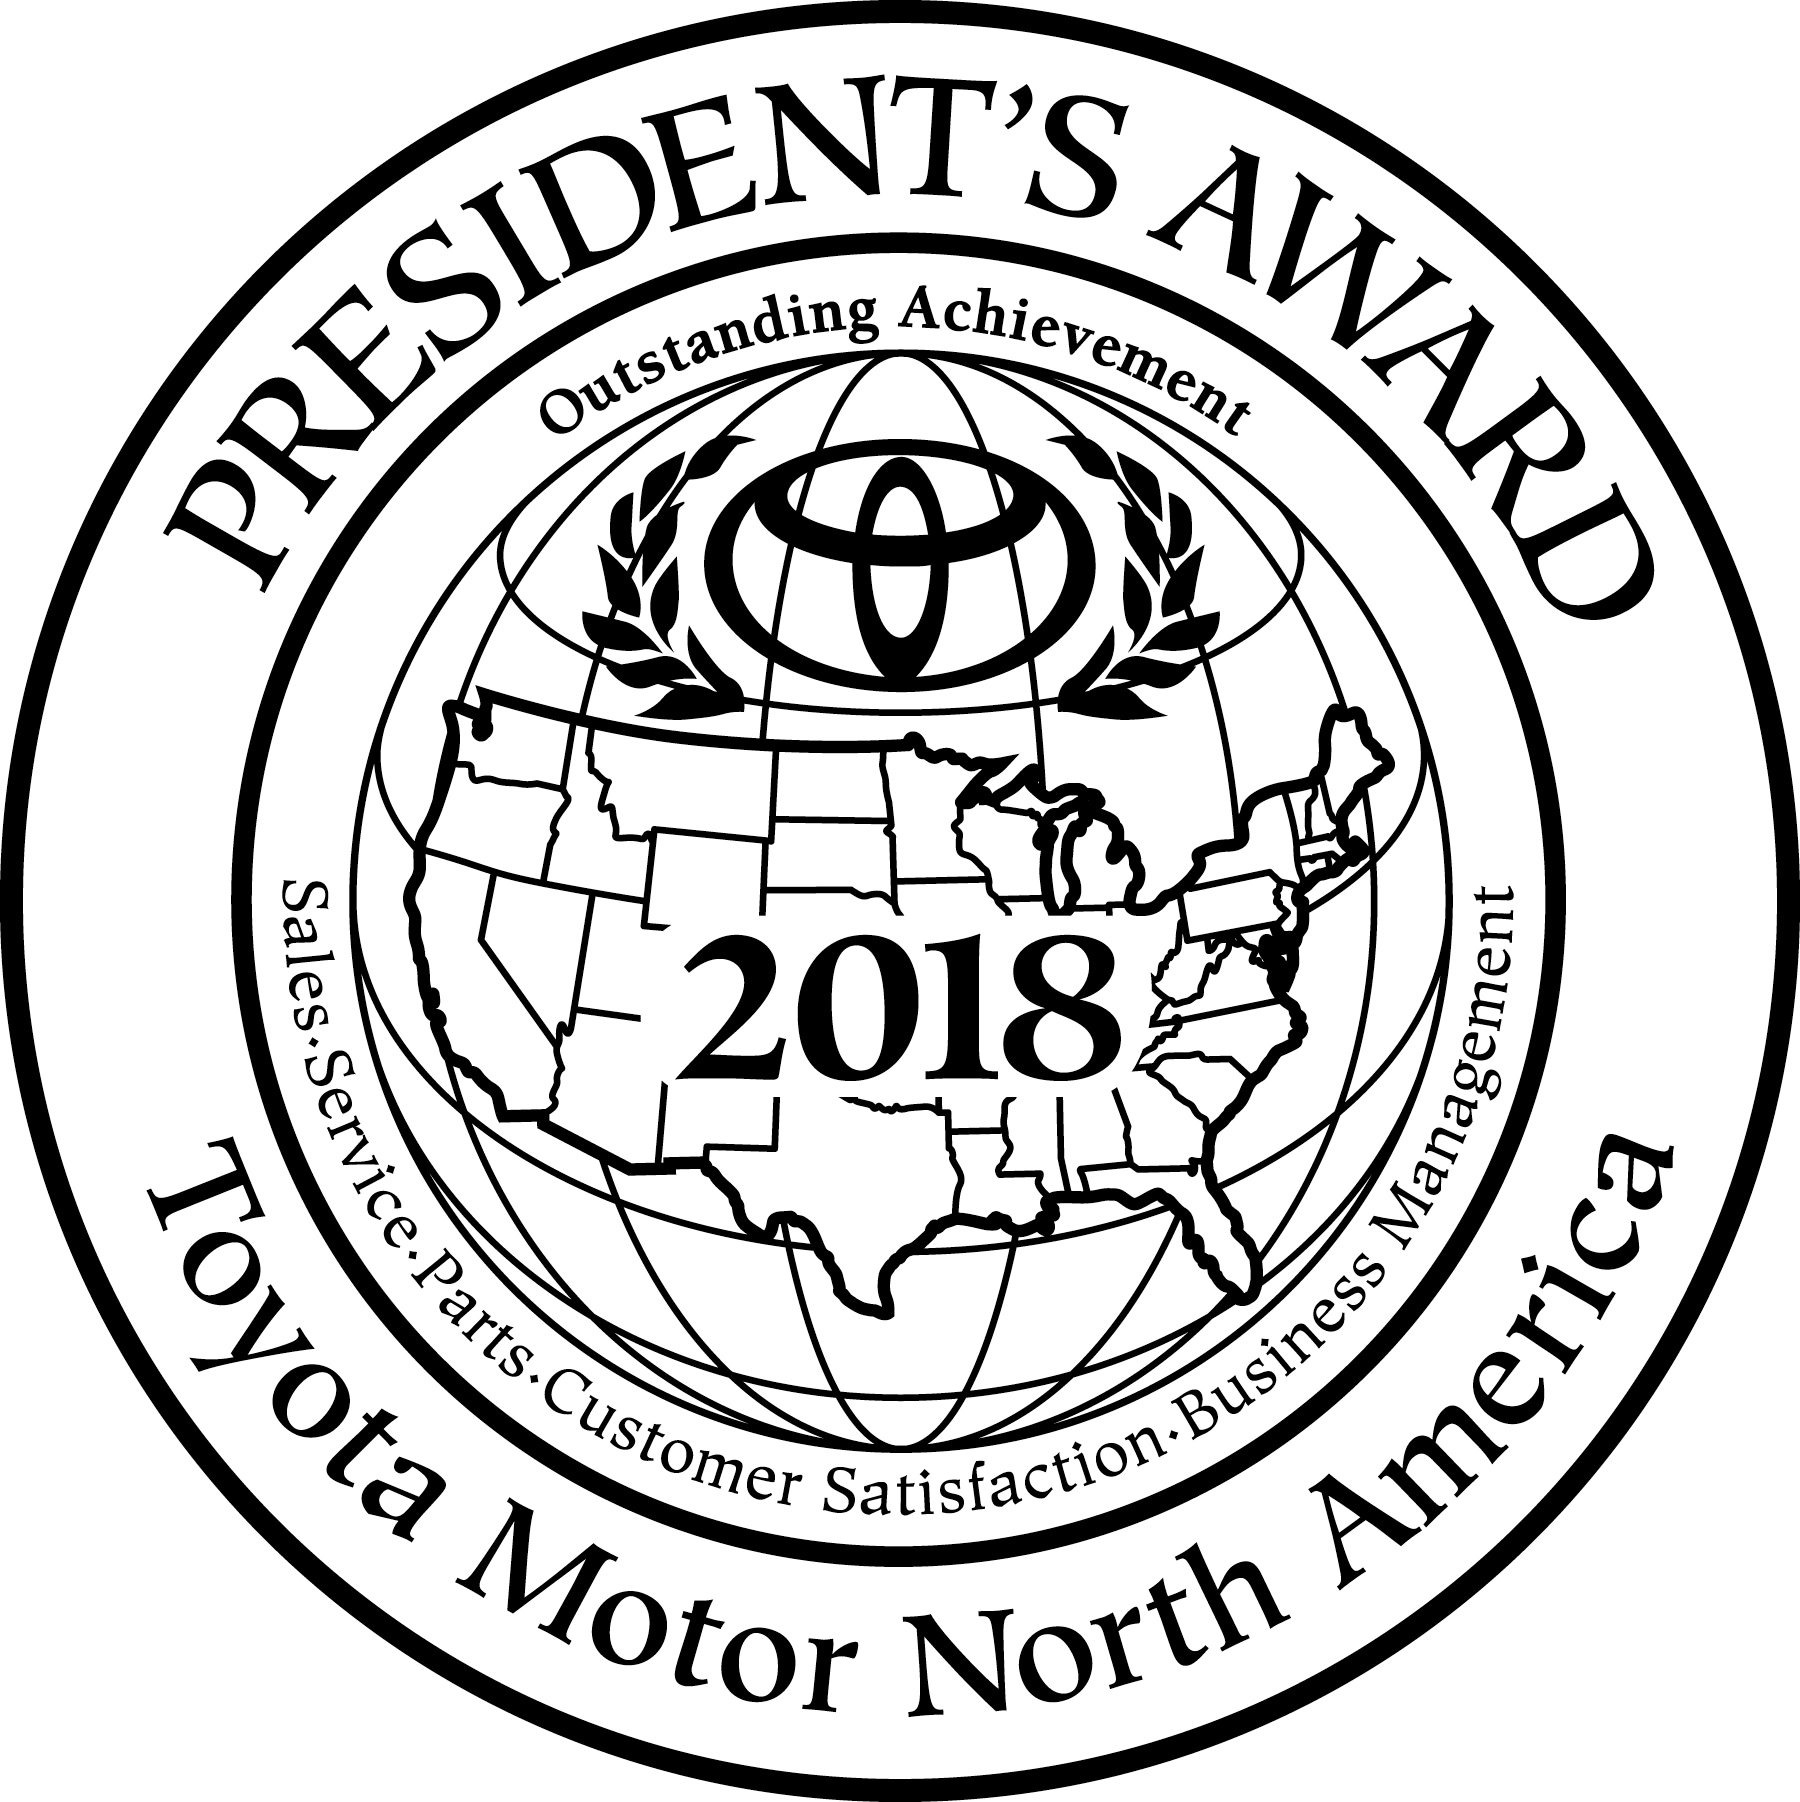 American Toyota 2018 Presidents Award